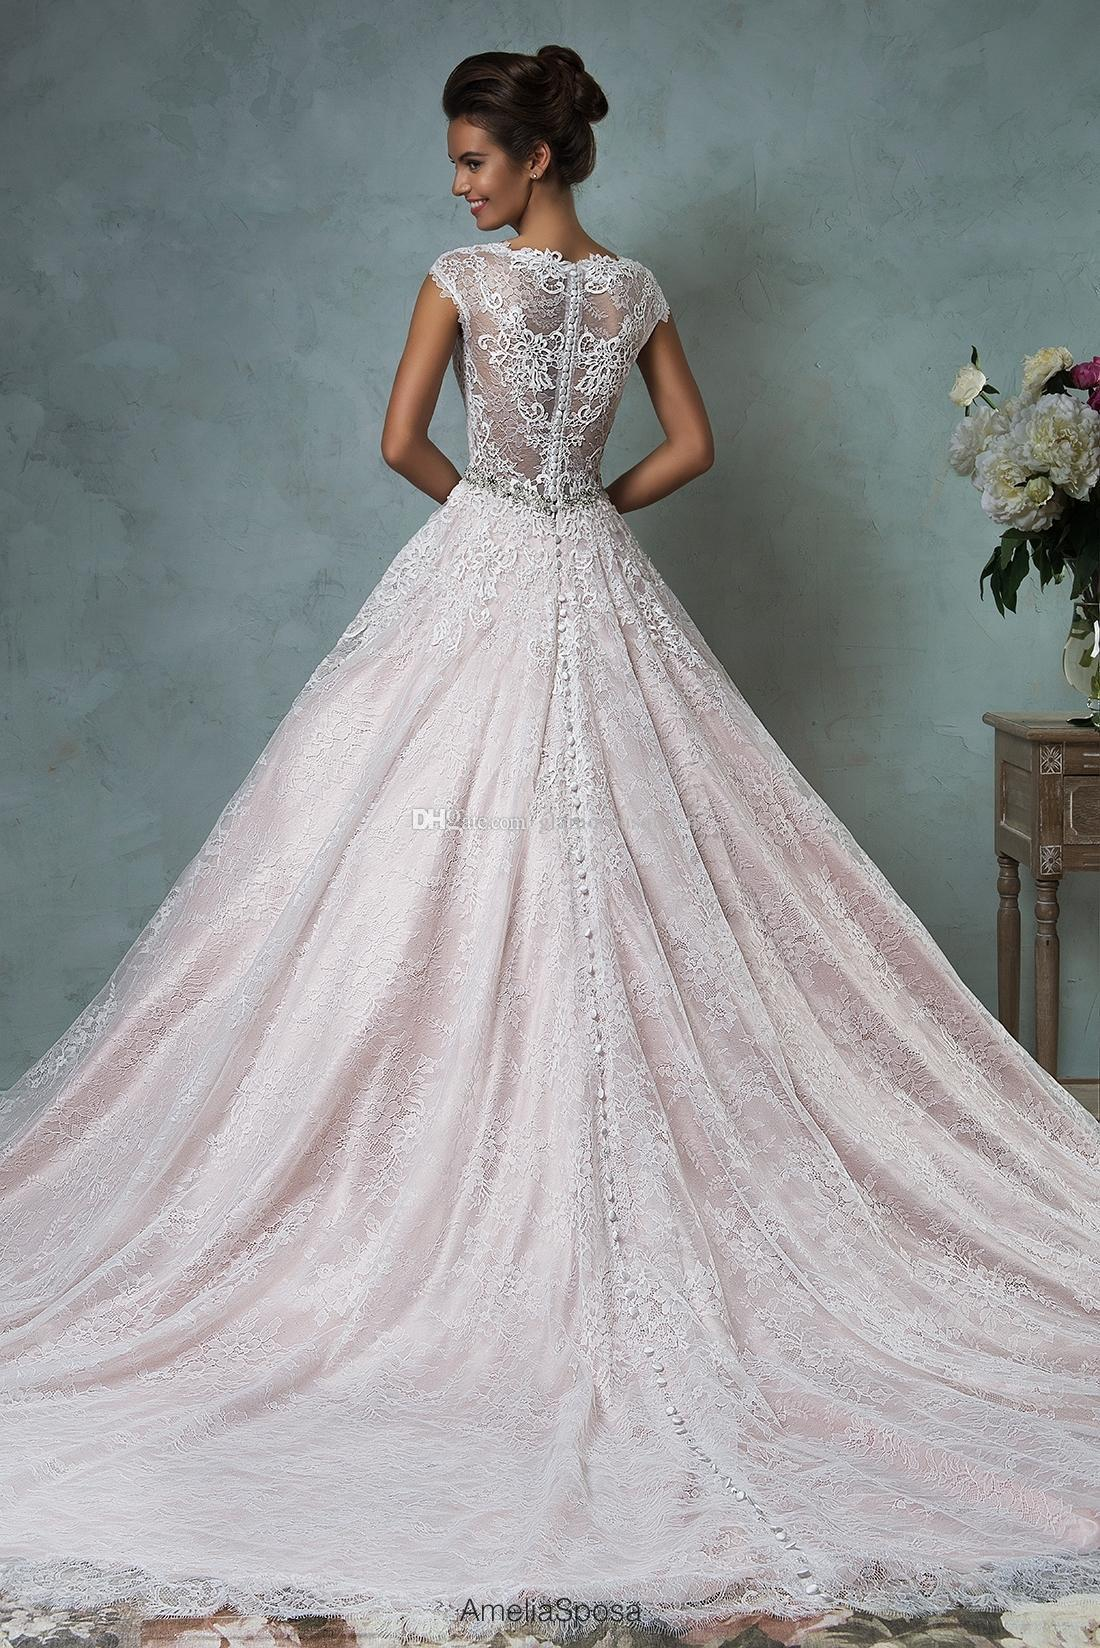 2016 Amelia Sposa Lace Wedding Dresses Cap Sleeves V Neck Beaded A Line Illusion Back Bridal Gowns With Buttons Back